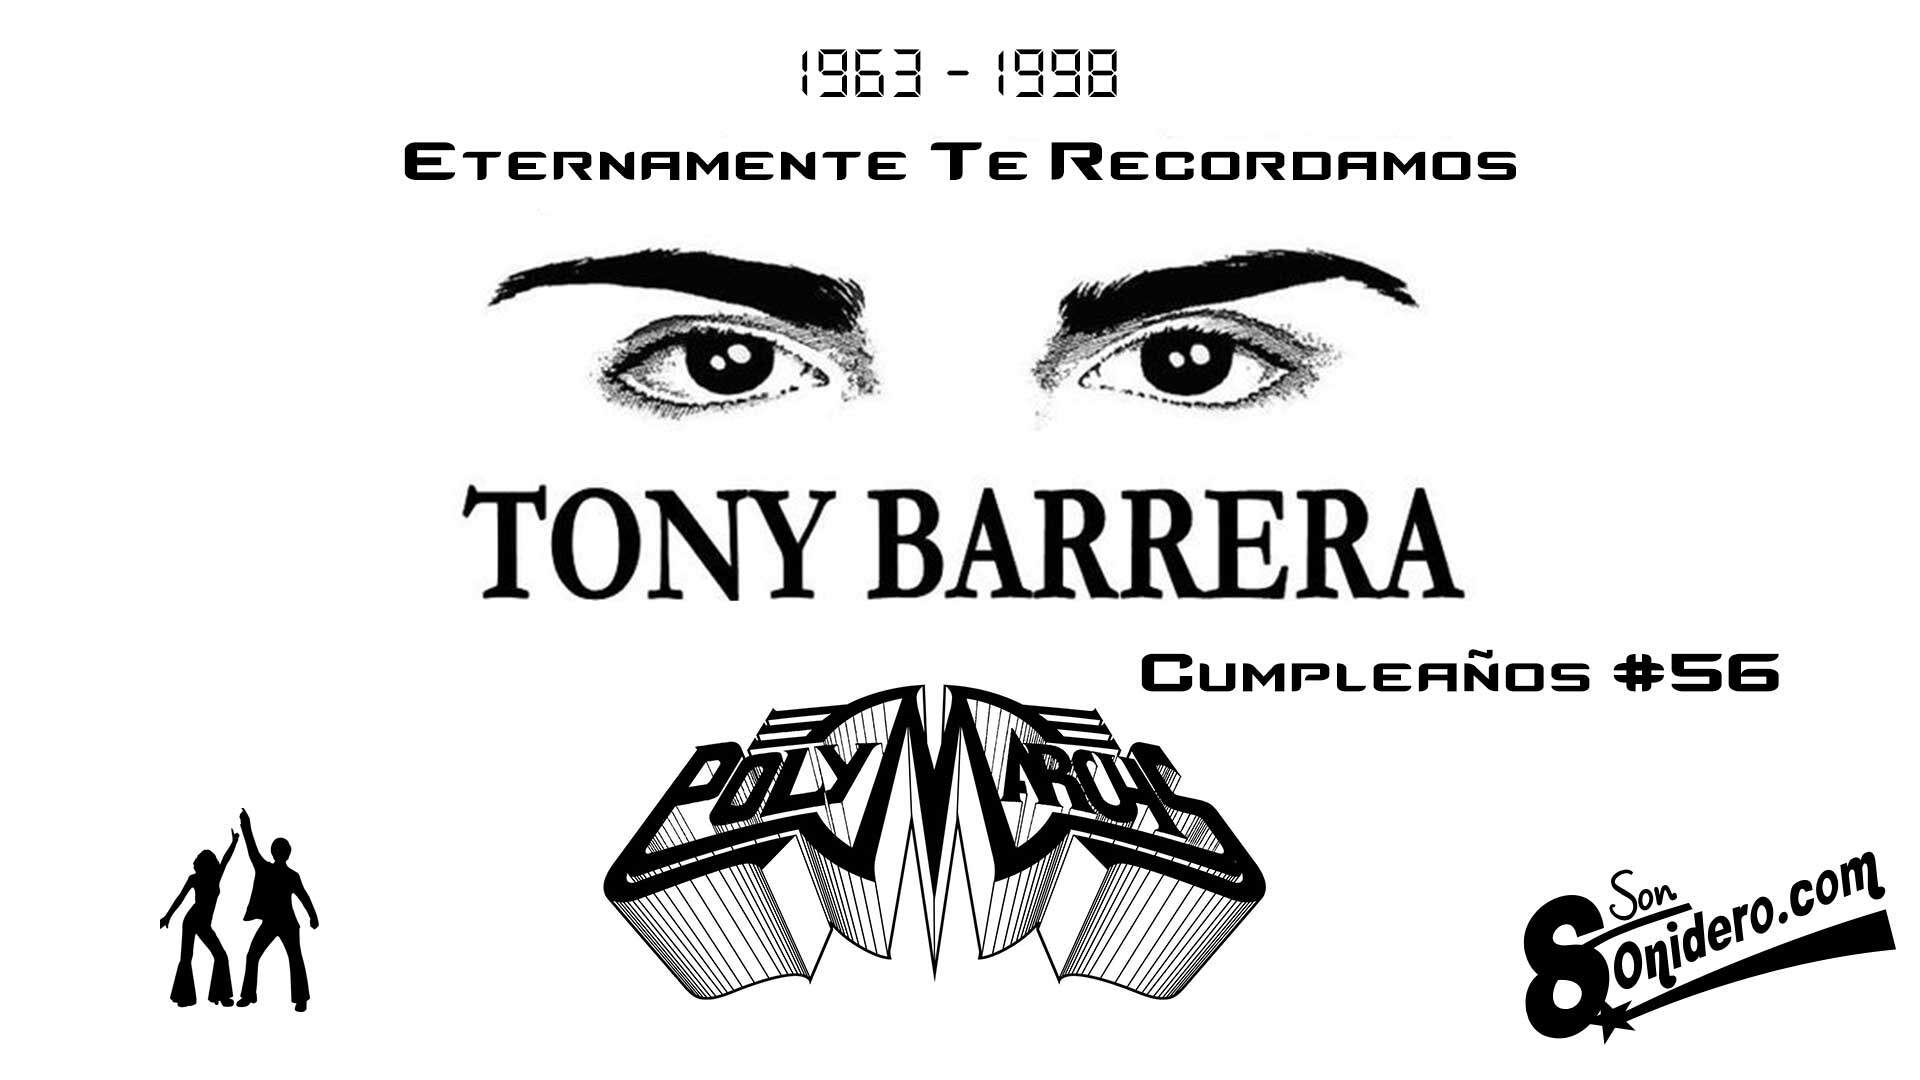 Tony Barrera